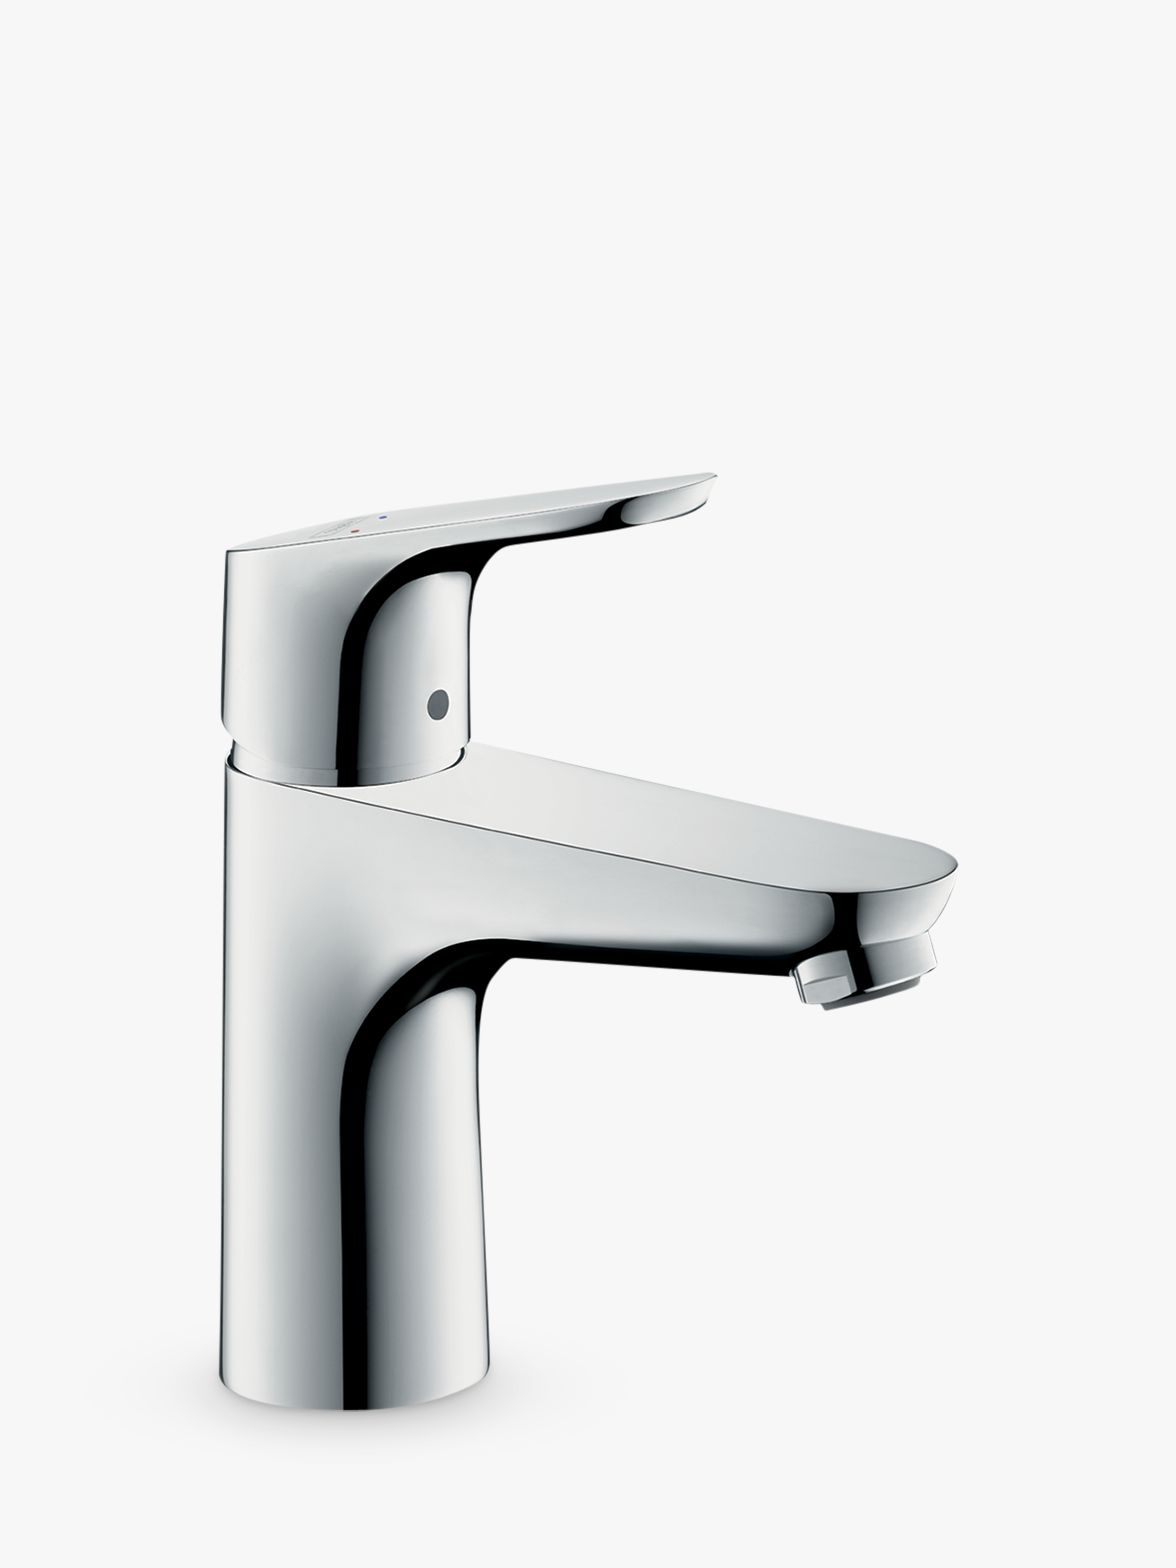 Hansgrohe Hansgrohe Focus 100mm Single Lever Bathroom/Shower Mixer Tap, Chrome